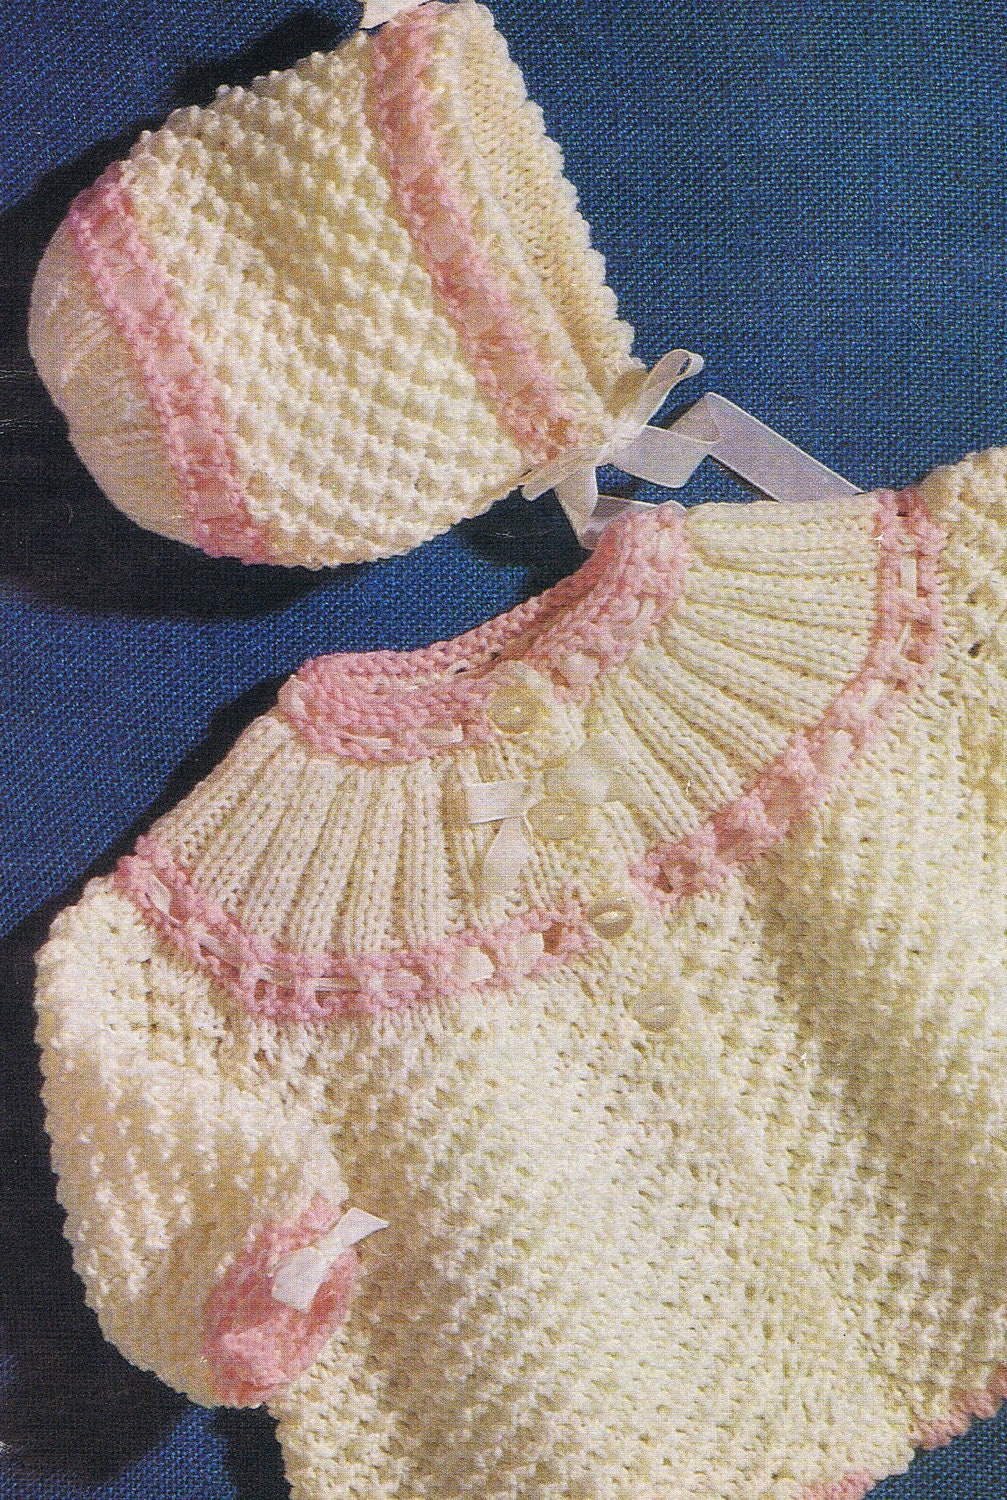 Instant Download 301. Knitted Matinee Jacket and bonnet